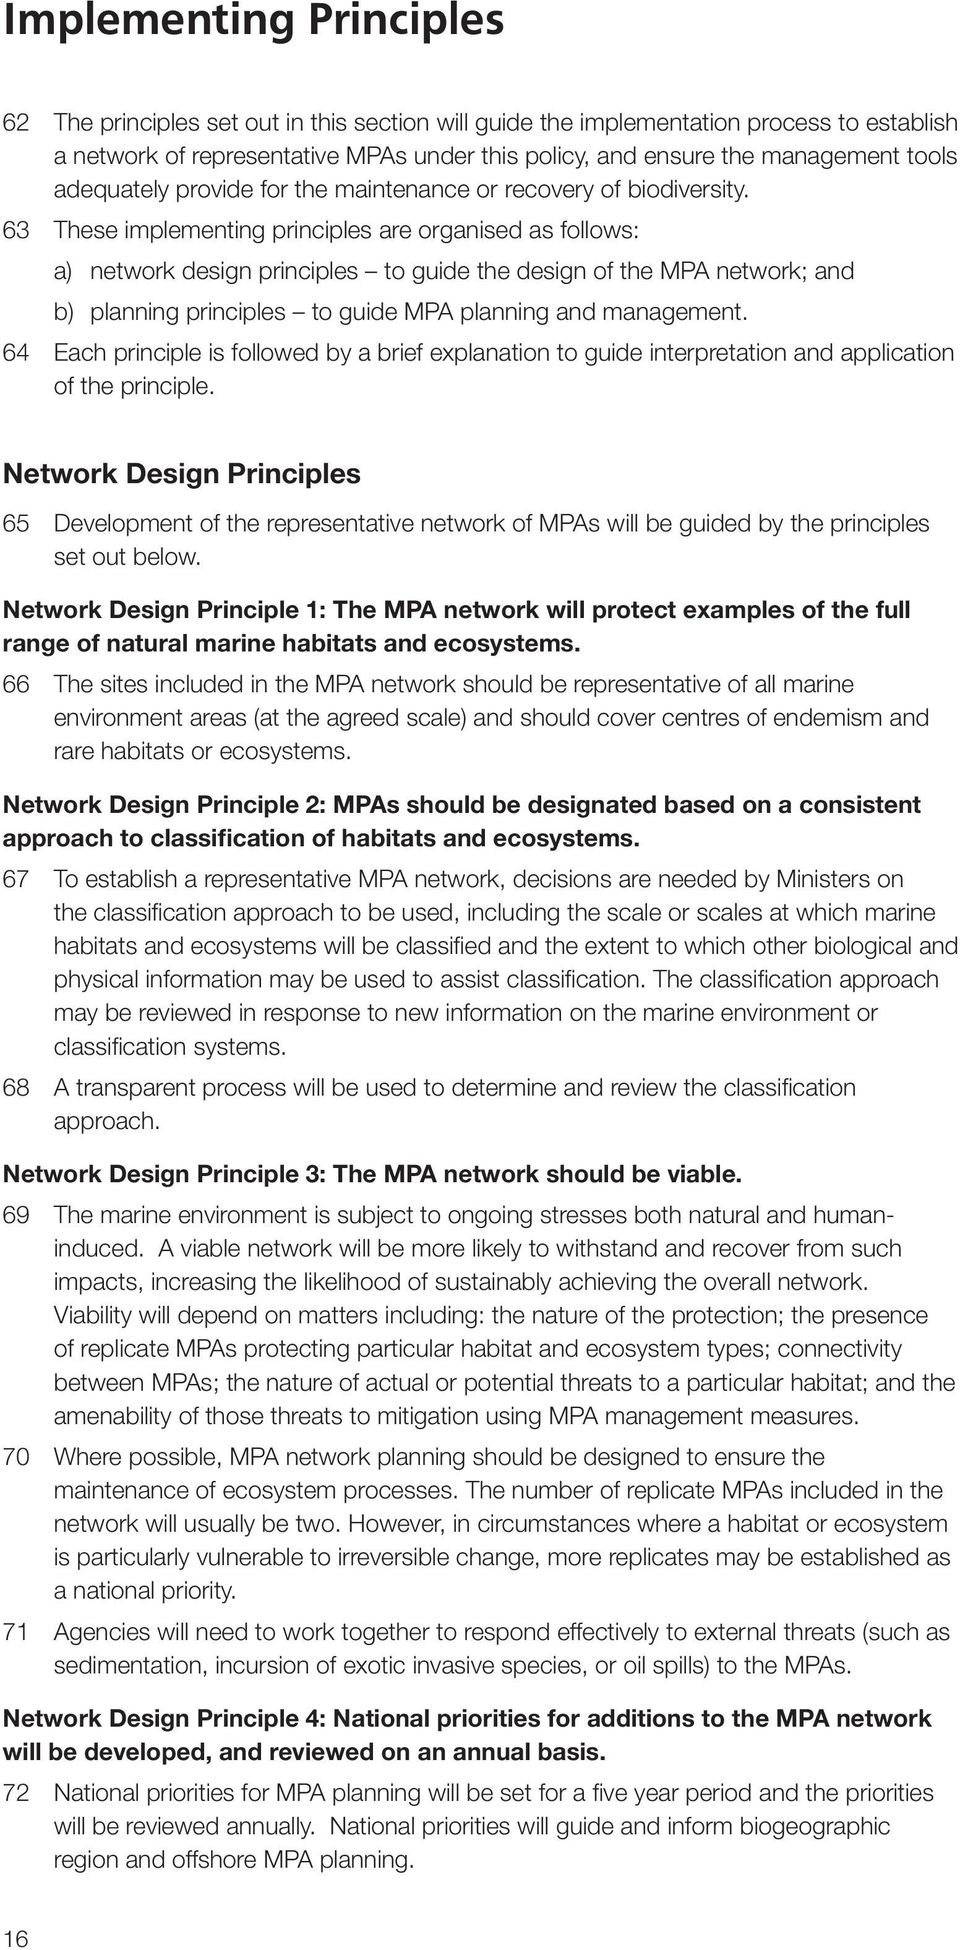 63 These implementing principles are organised as follows: a) network design principles to guide the design of the MPA network; and b) planning principles to guide MPA planning and management.